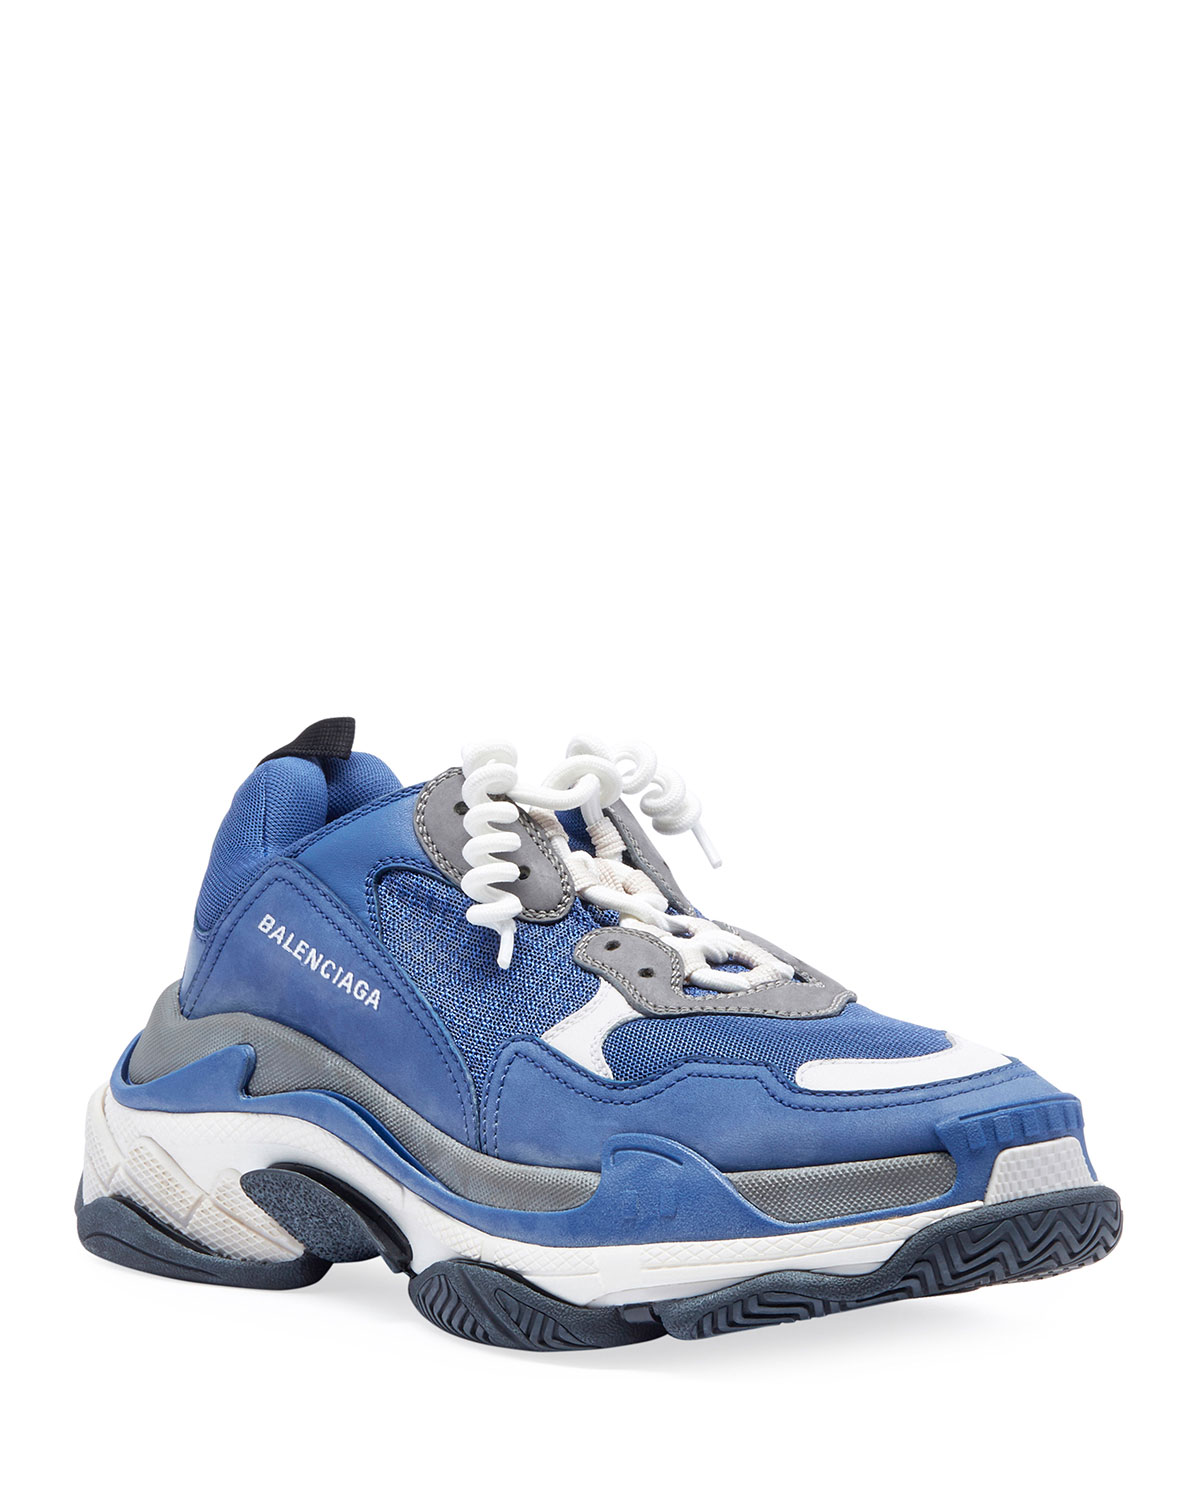 balenciaga sneakers blue